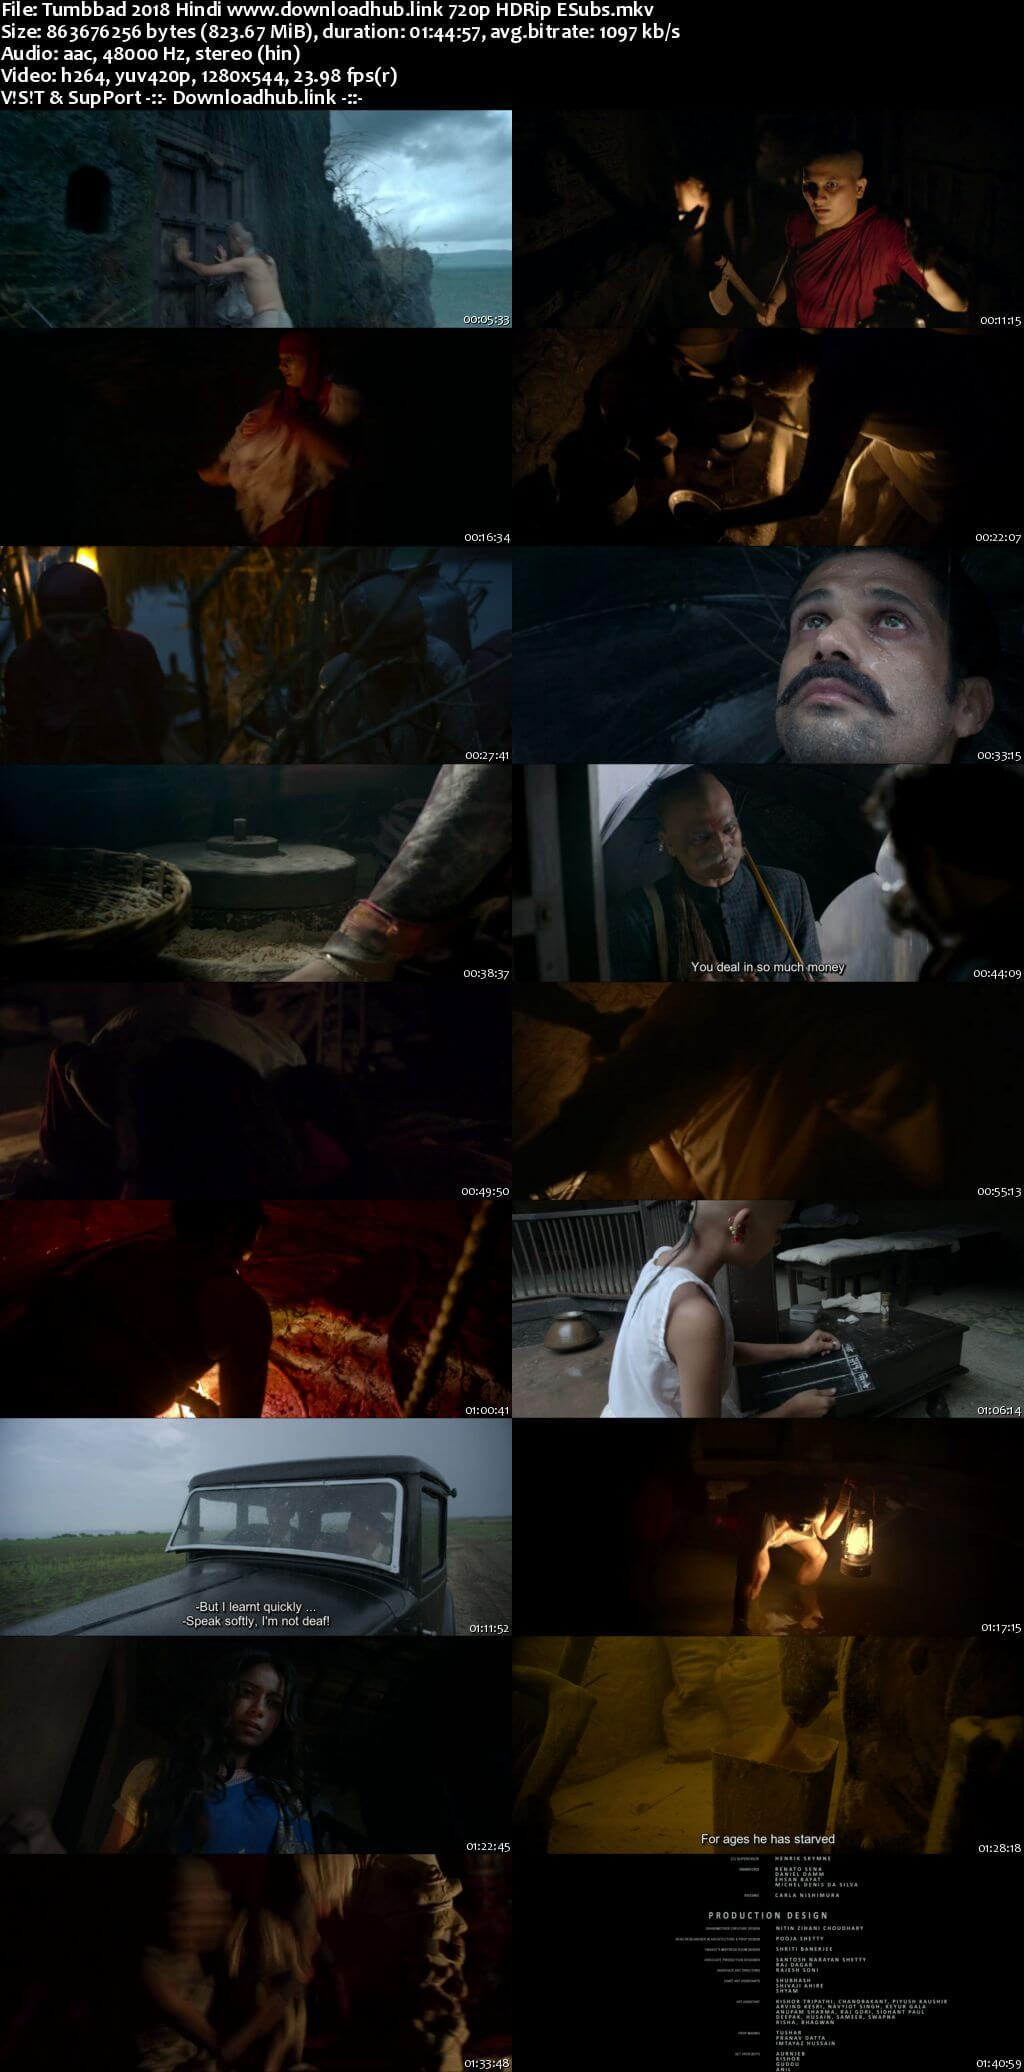 Tumbbad 2018 Hindi 720p HDRip ESubs